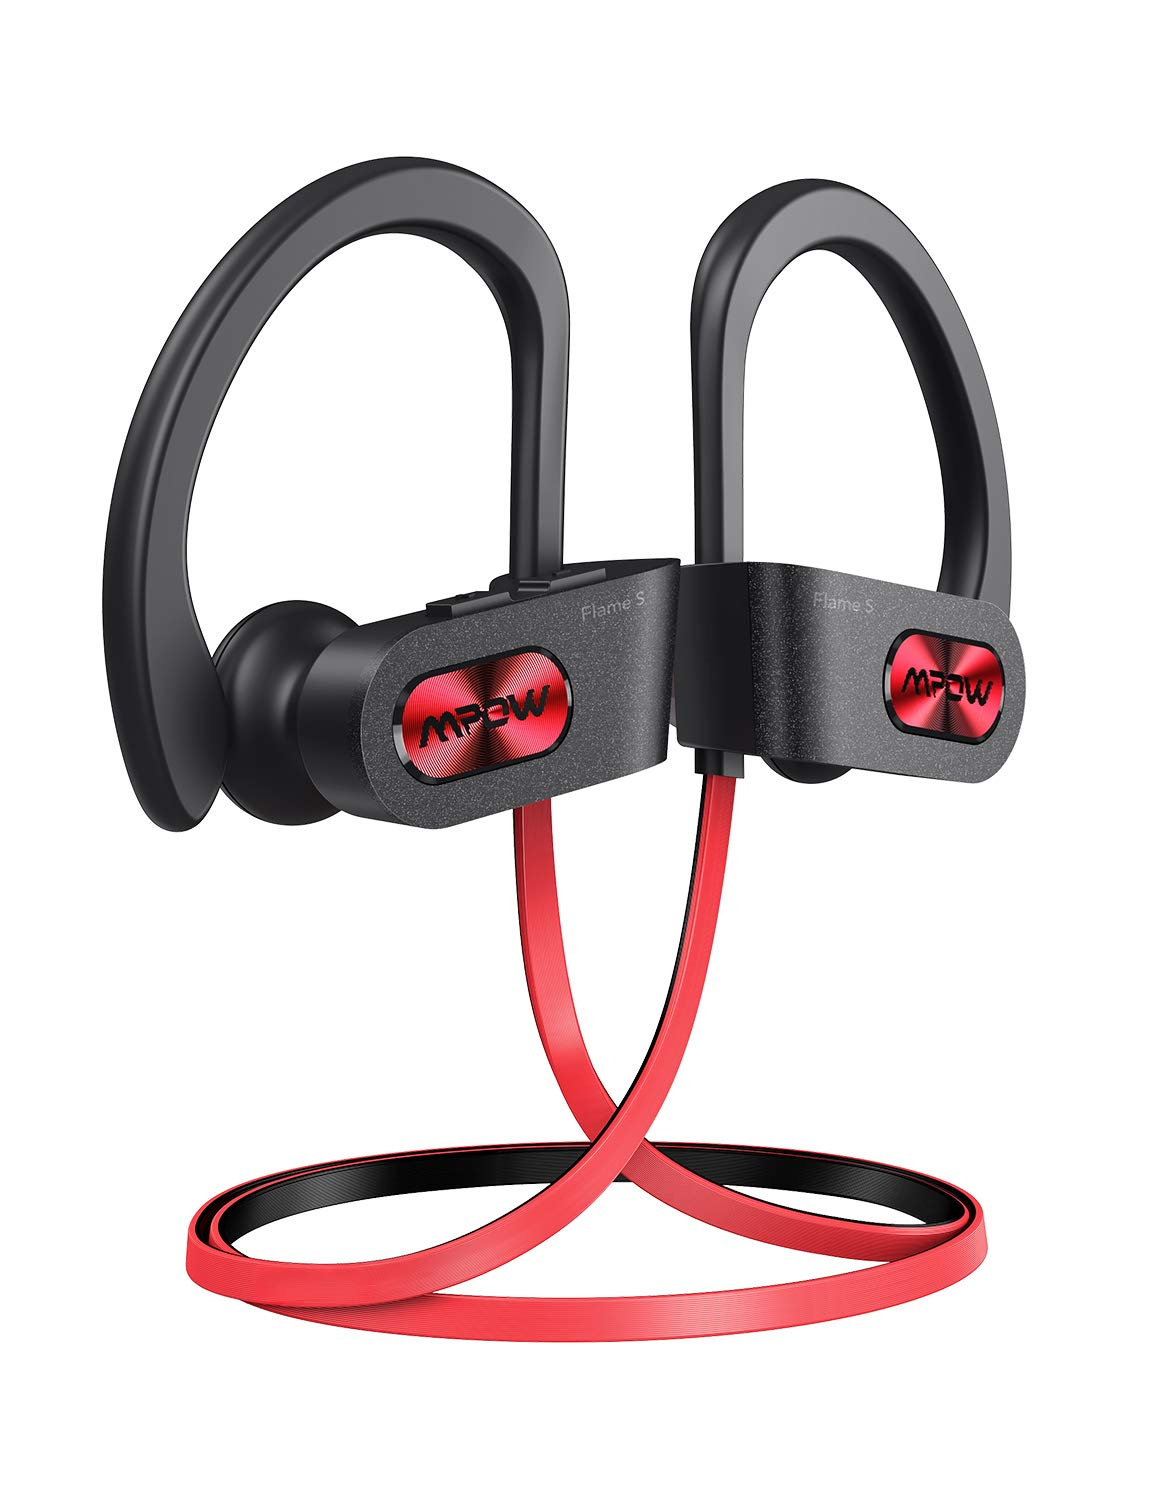 Mpow Flame S Wireless Headphones, Pro version aptX-HD Bass Sound Bluetooth Headphones, Bluetooth 5.0 IPX7 Waterproof Sports headphone, 12H Playtime, CVC 8.0 Noise Cancelling Mic,W Carrying Case, Red